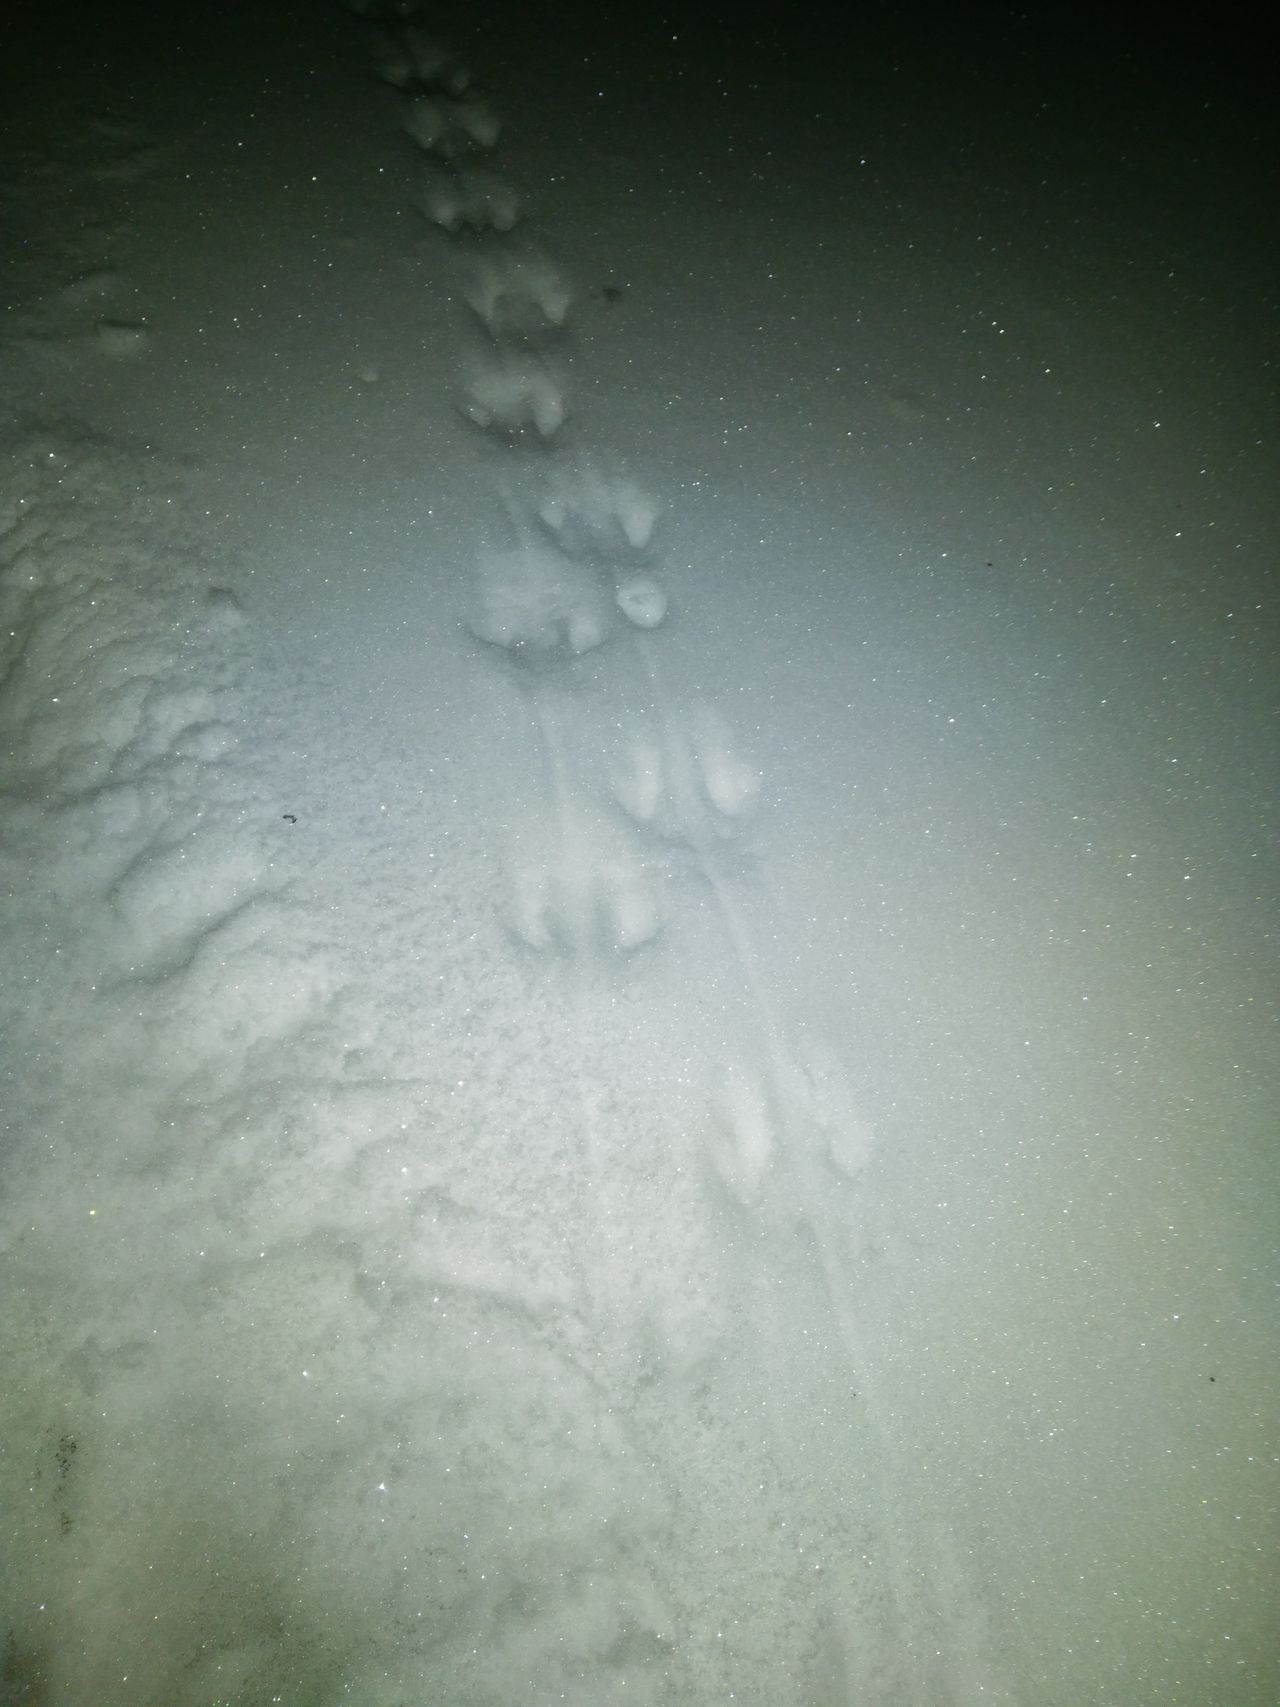 Reconnaissance Mission Snow ❄ Snow Lol Little Foot Prints Mouse Or Chipmunk Morningview No Filter, No Edit, Just Photography No Crop Photography Is My Escape From Reality!